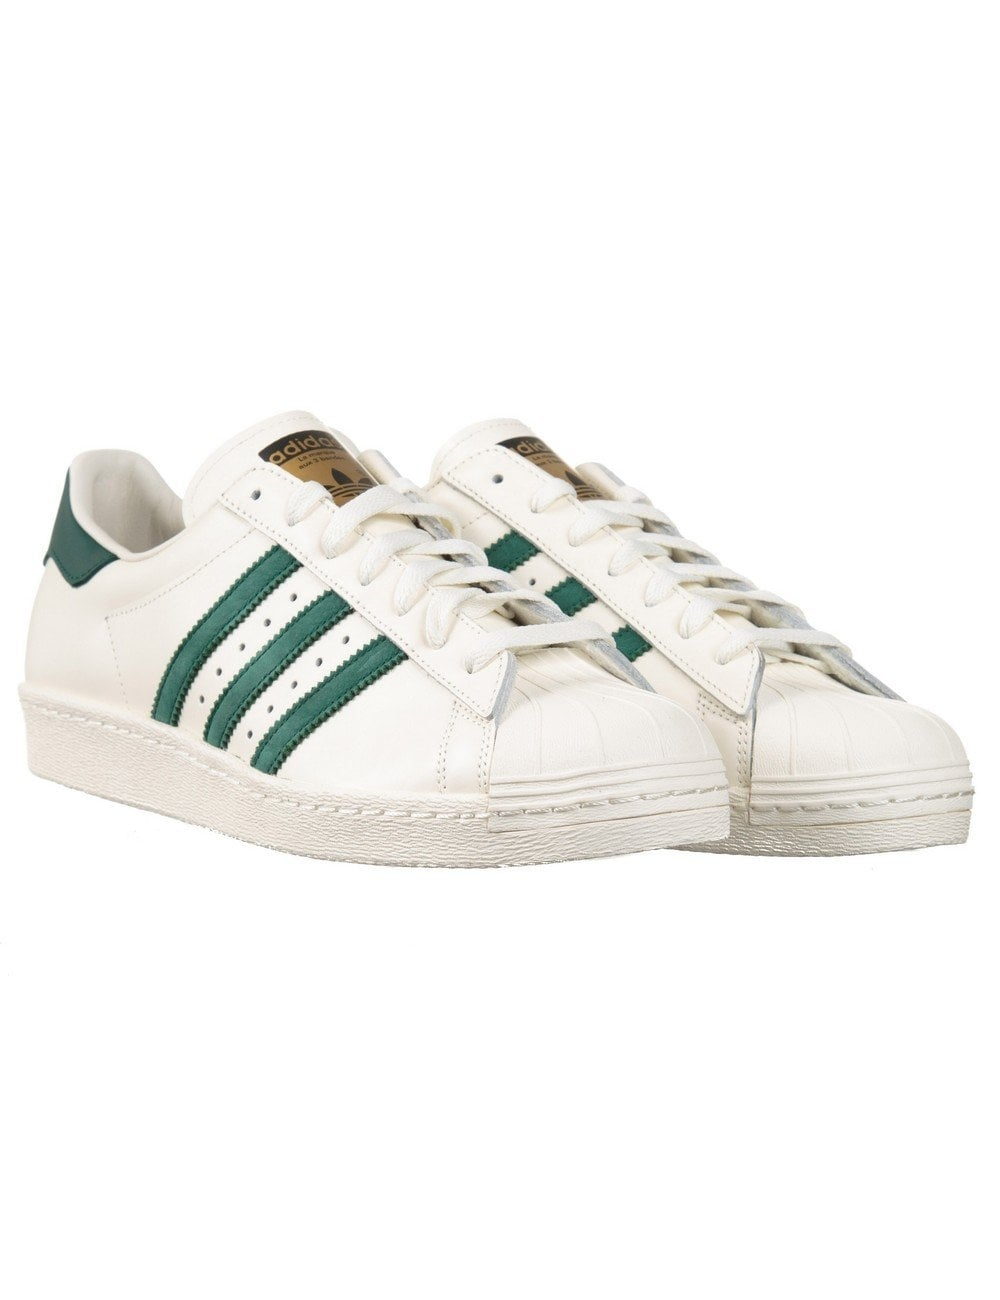 best cheap 66f43 6a0d6 Adidas Superstar White With Green Stripes ...